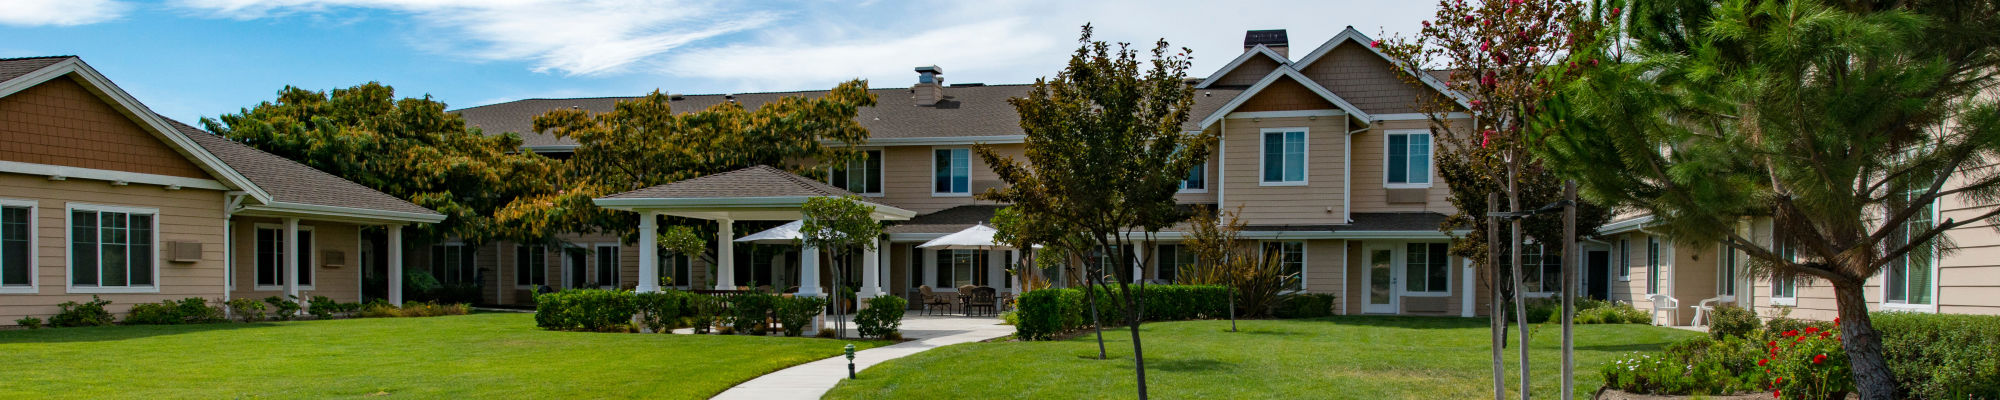 Schedule a Tour at The Commons at Dallas Ranch in Antioch, California